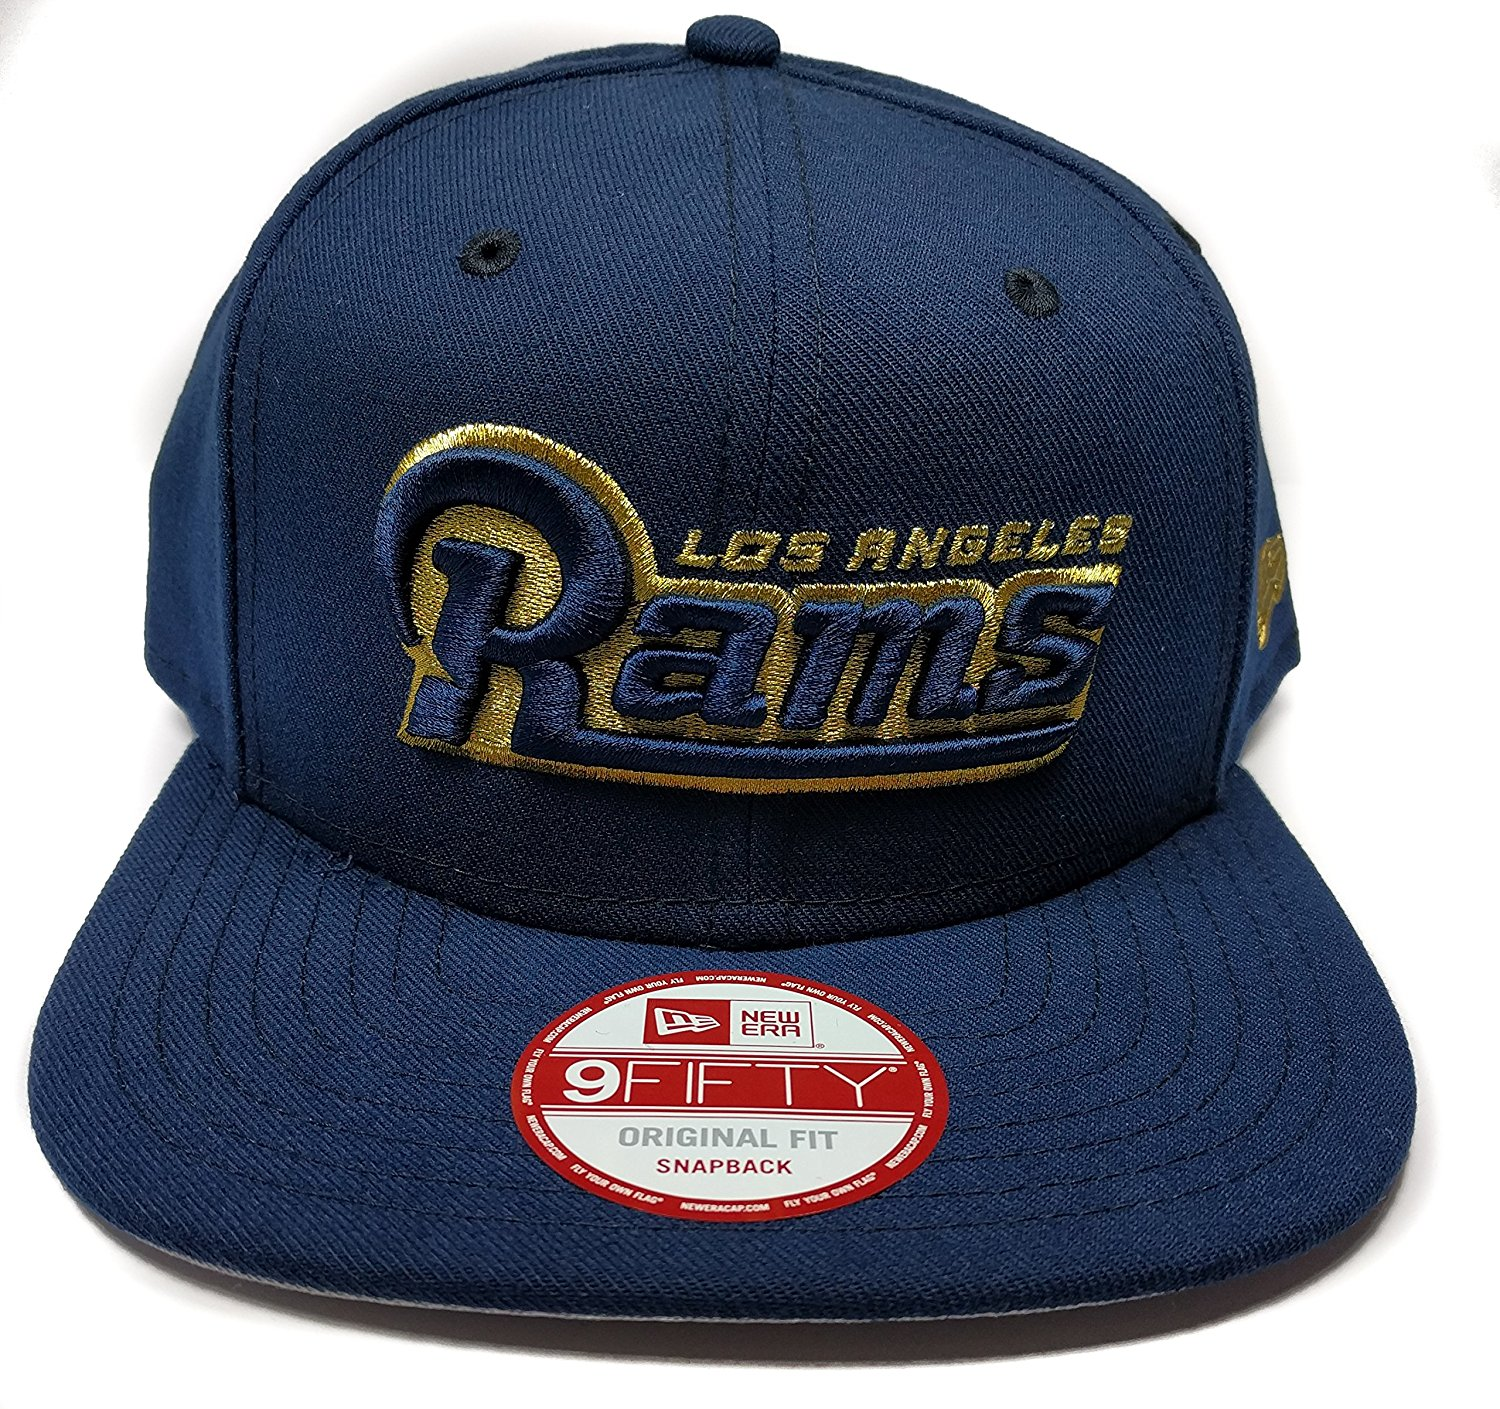 26ef9758 Get Quotations · NFL Los Angeles Rams Official Wordmark New Era 9FIFTY  Snapback Hat - Navy Blue